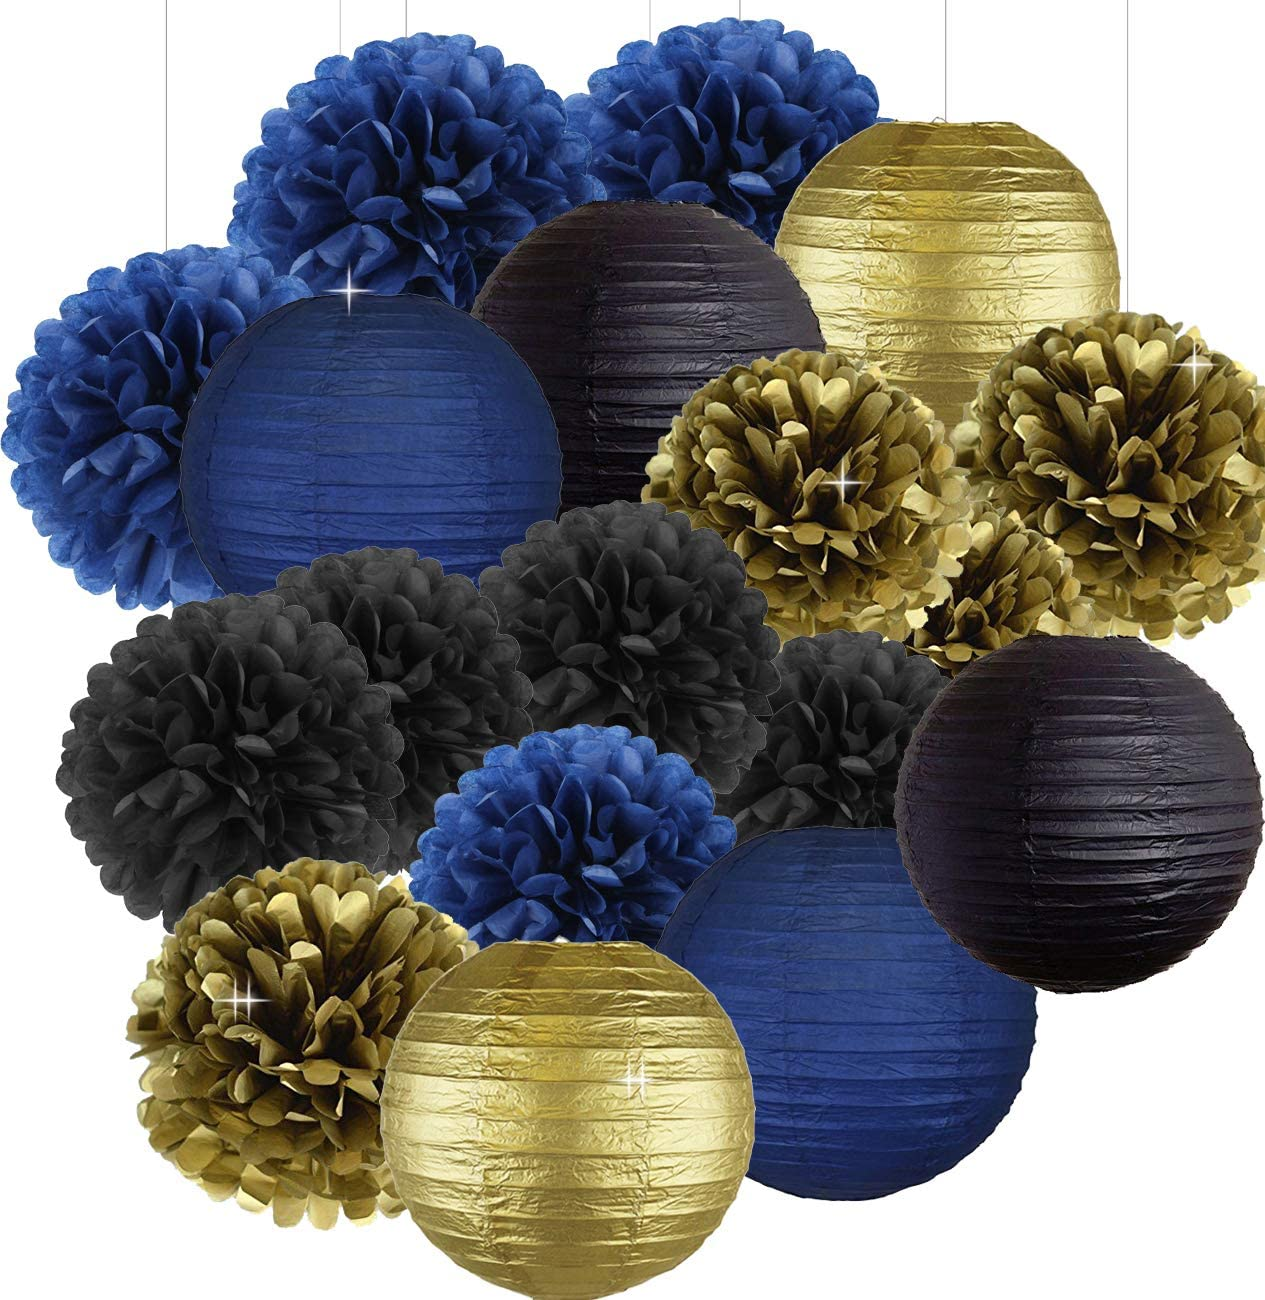 Black Navy Blue Gold 8inch 10inch Tissue Paper Pom Pom Paper Flowers Paper Honeycomb Paper Lanterns for Navy Blue Themed Party,Party Decoration Bridal Shower Decor Baby Shower Decoration